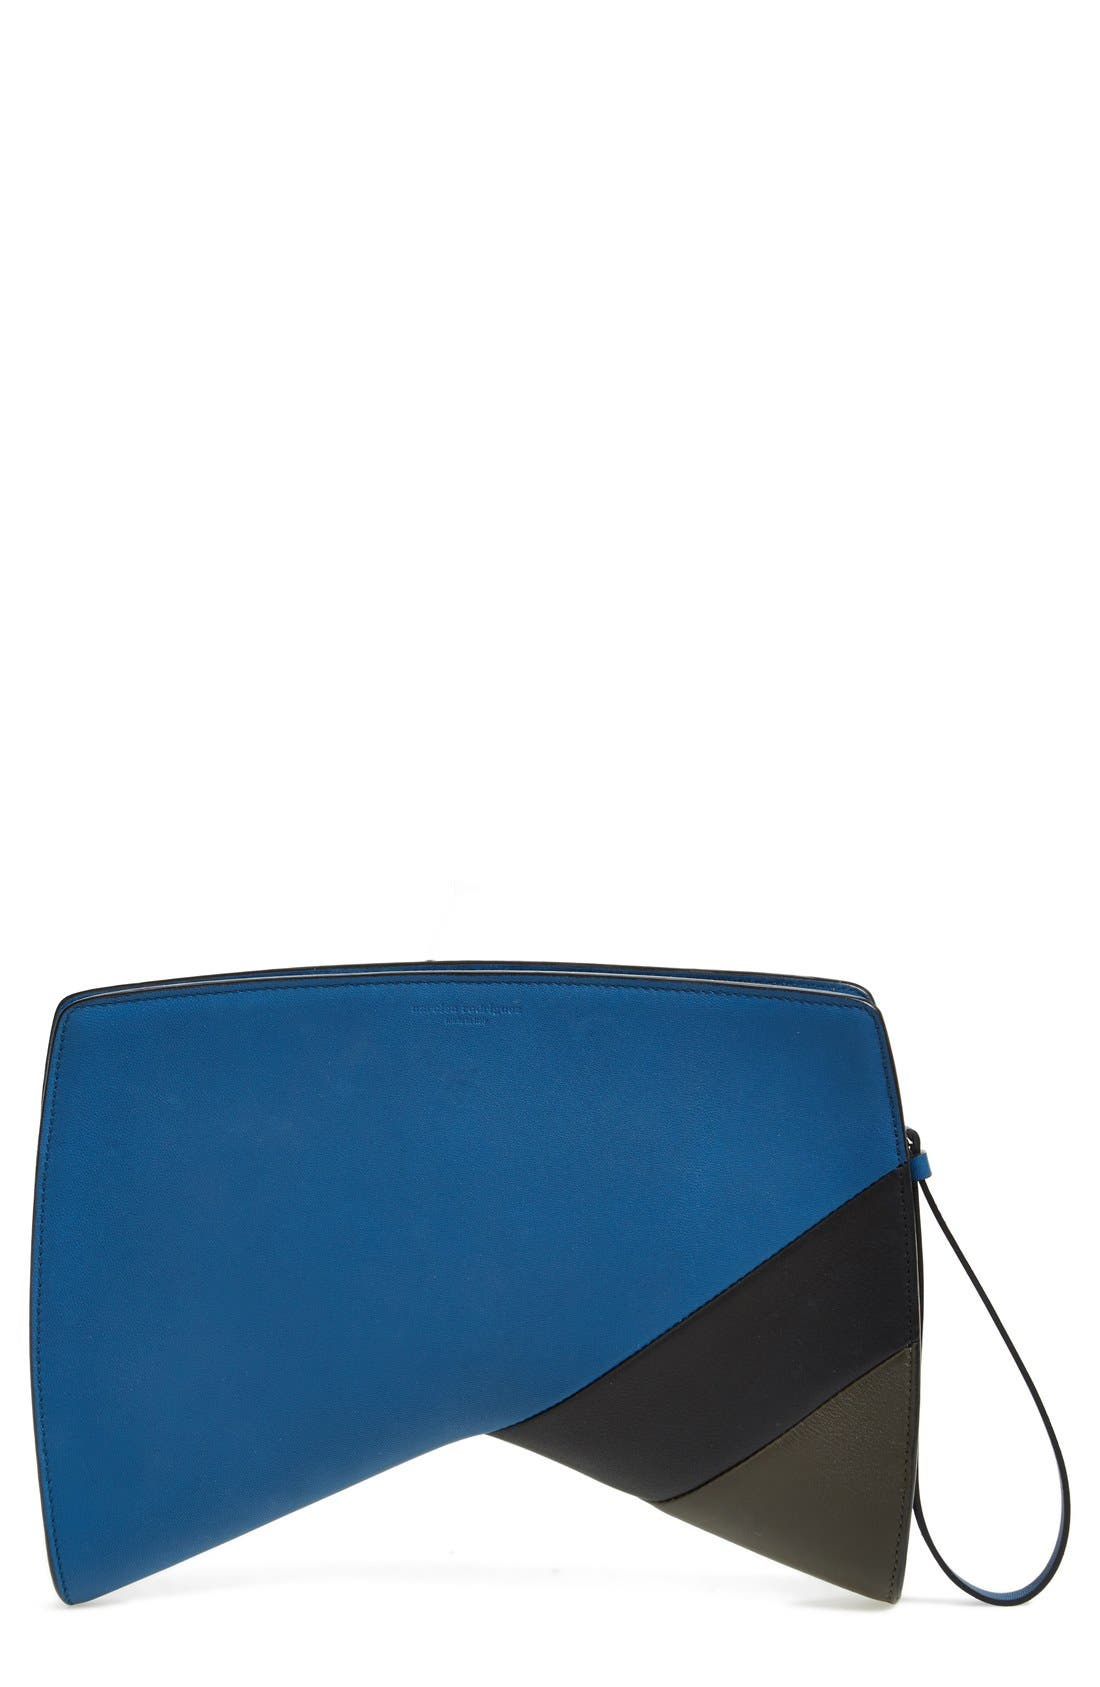 Alternate Image 1 Selected - Narciso Rodriguez 'Boomerang' Leather Clutch